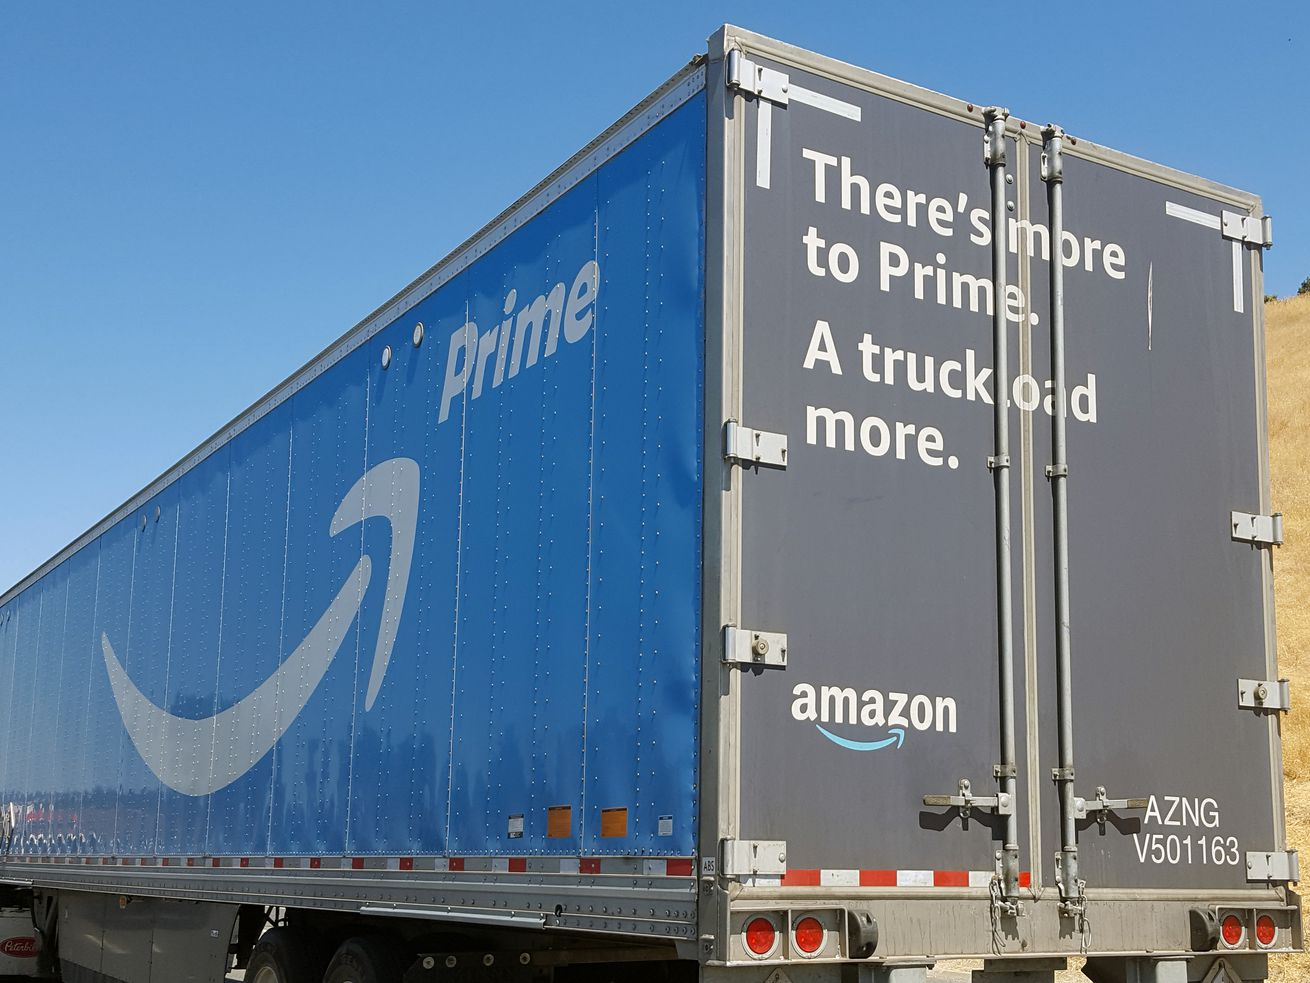 Recode Daily: What comes next for Amazon after its 100 million Prime number?